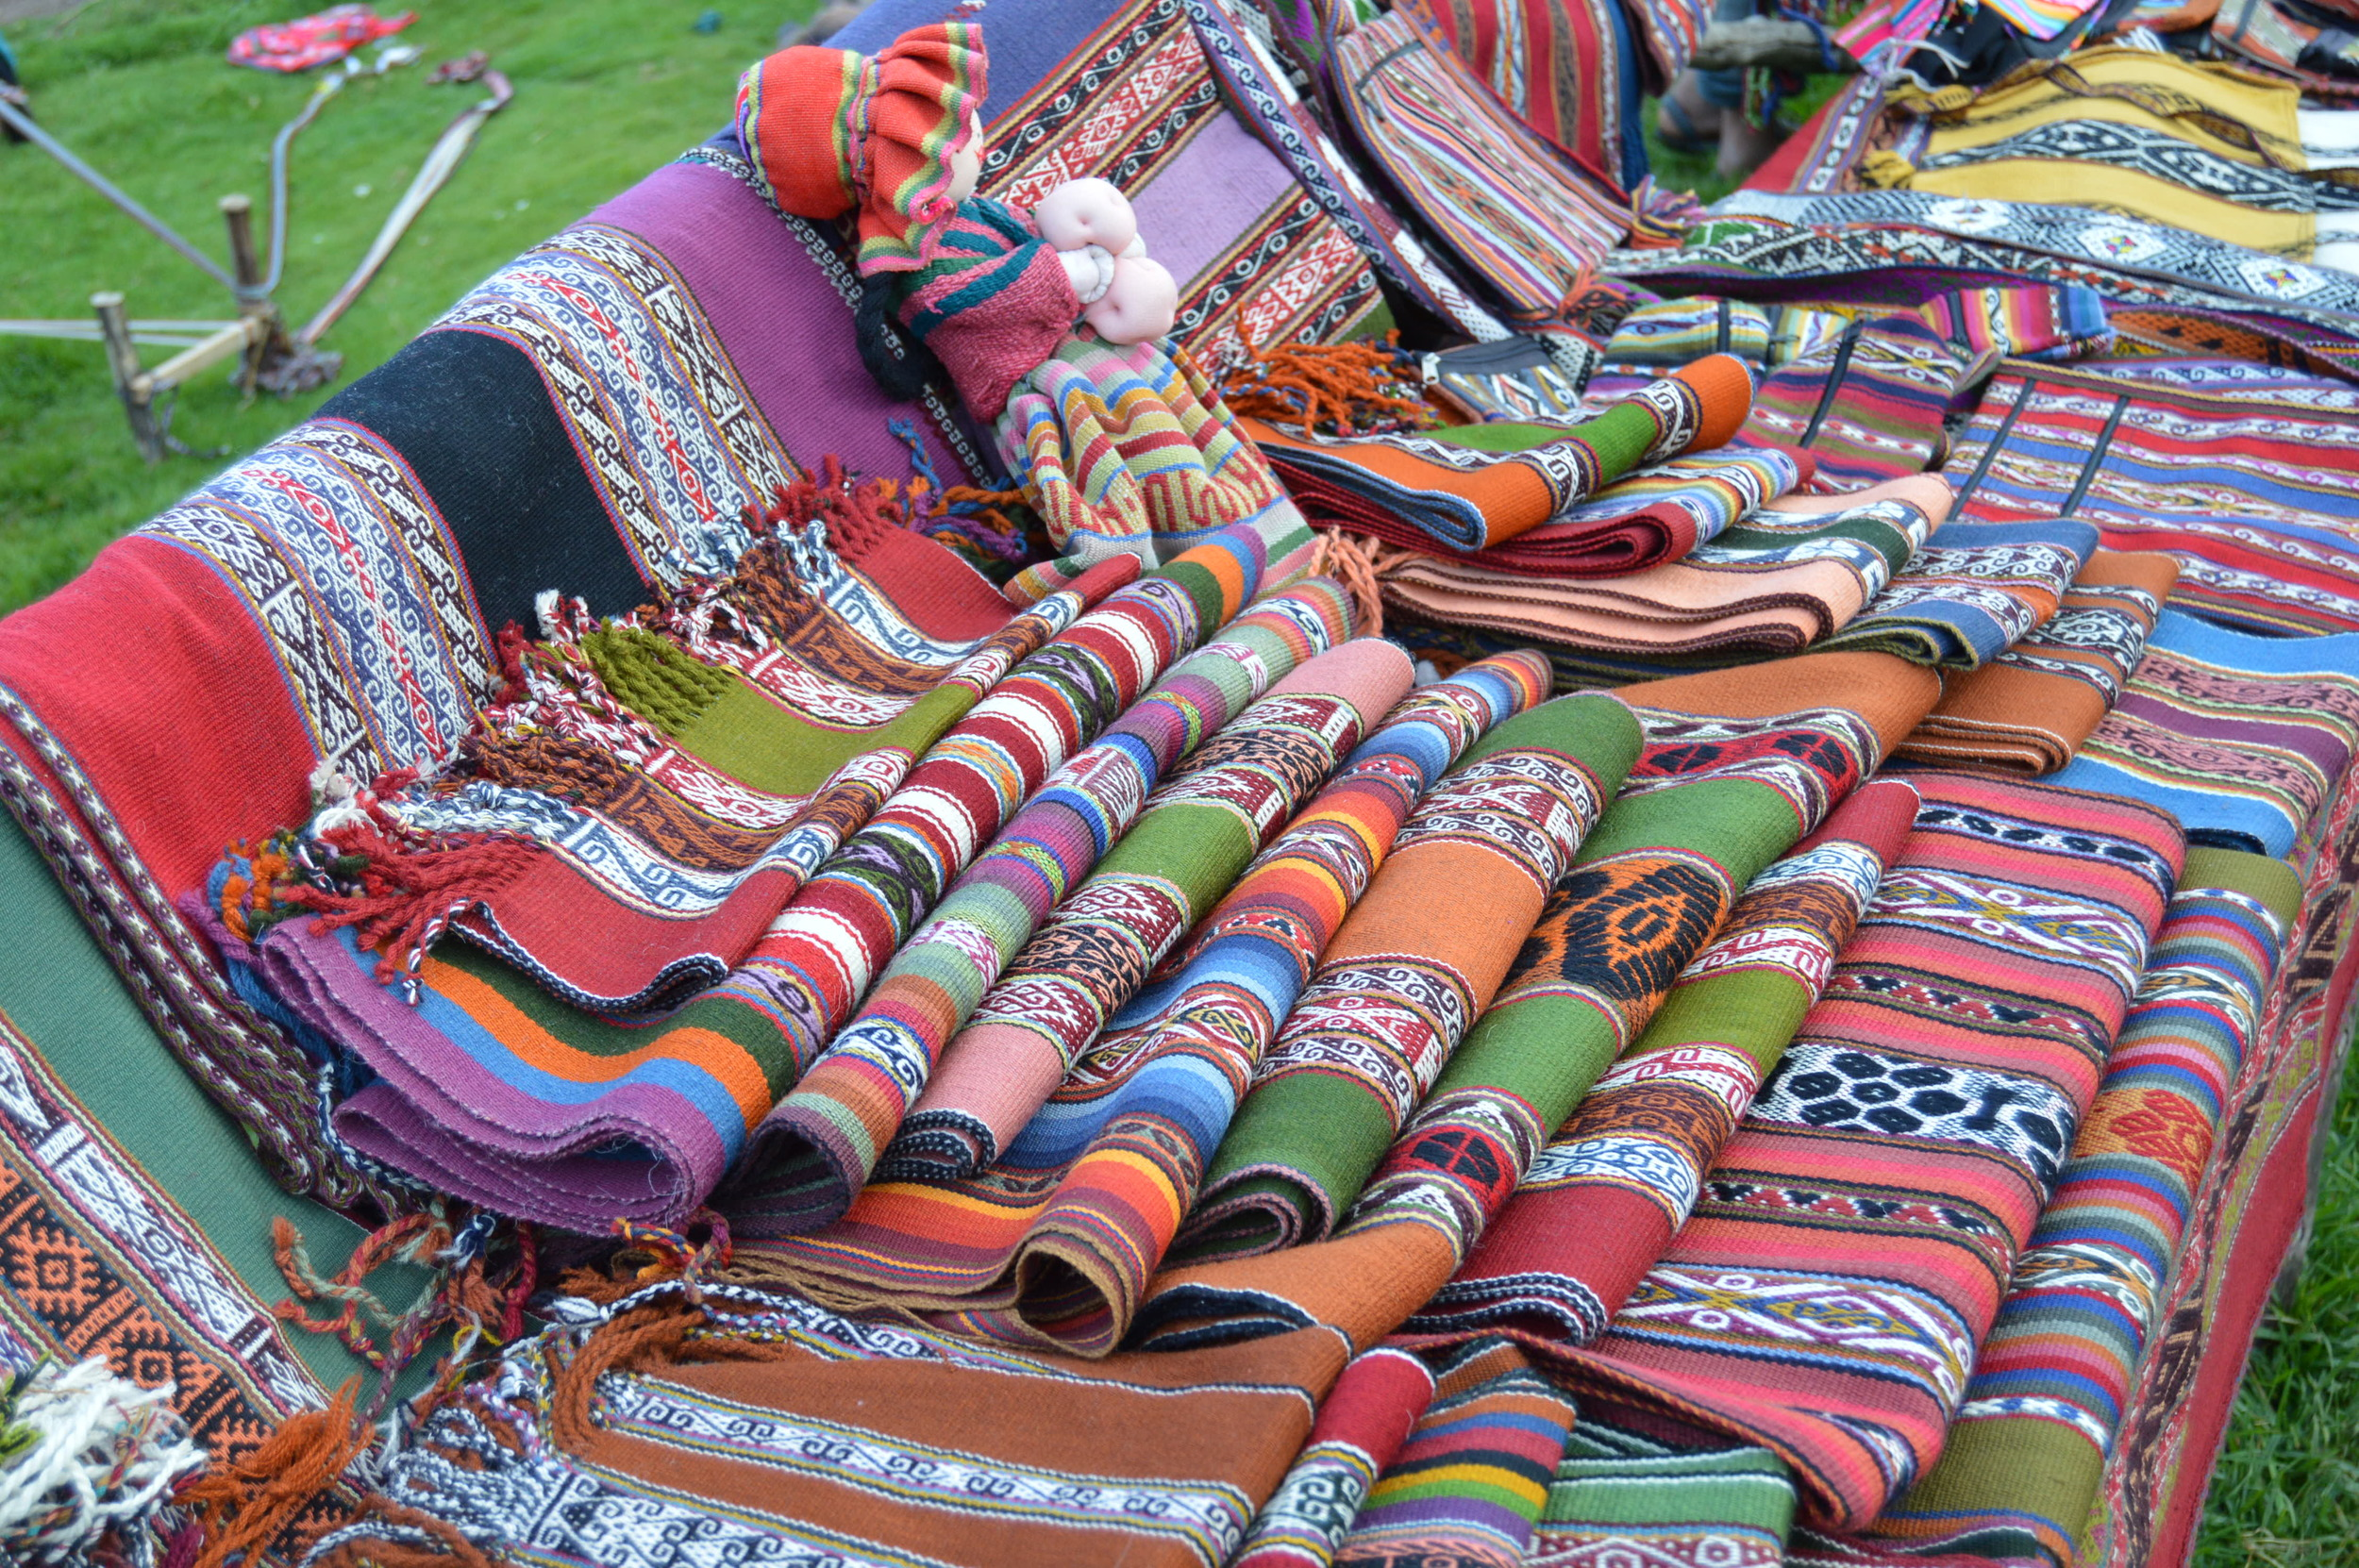 Goods hand-made by the Amaru community can be bargained for (optional)